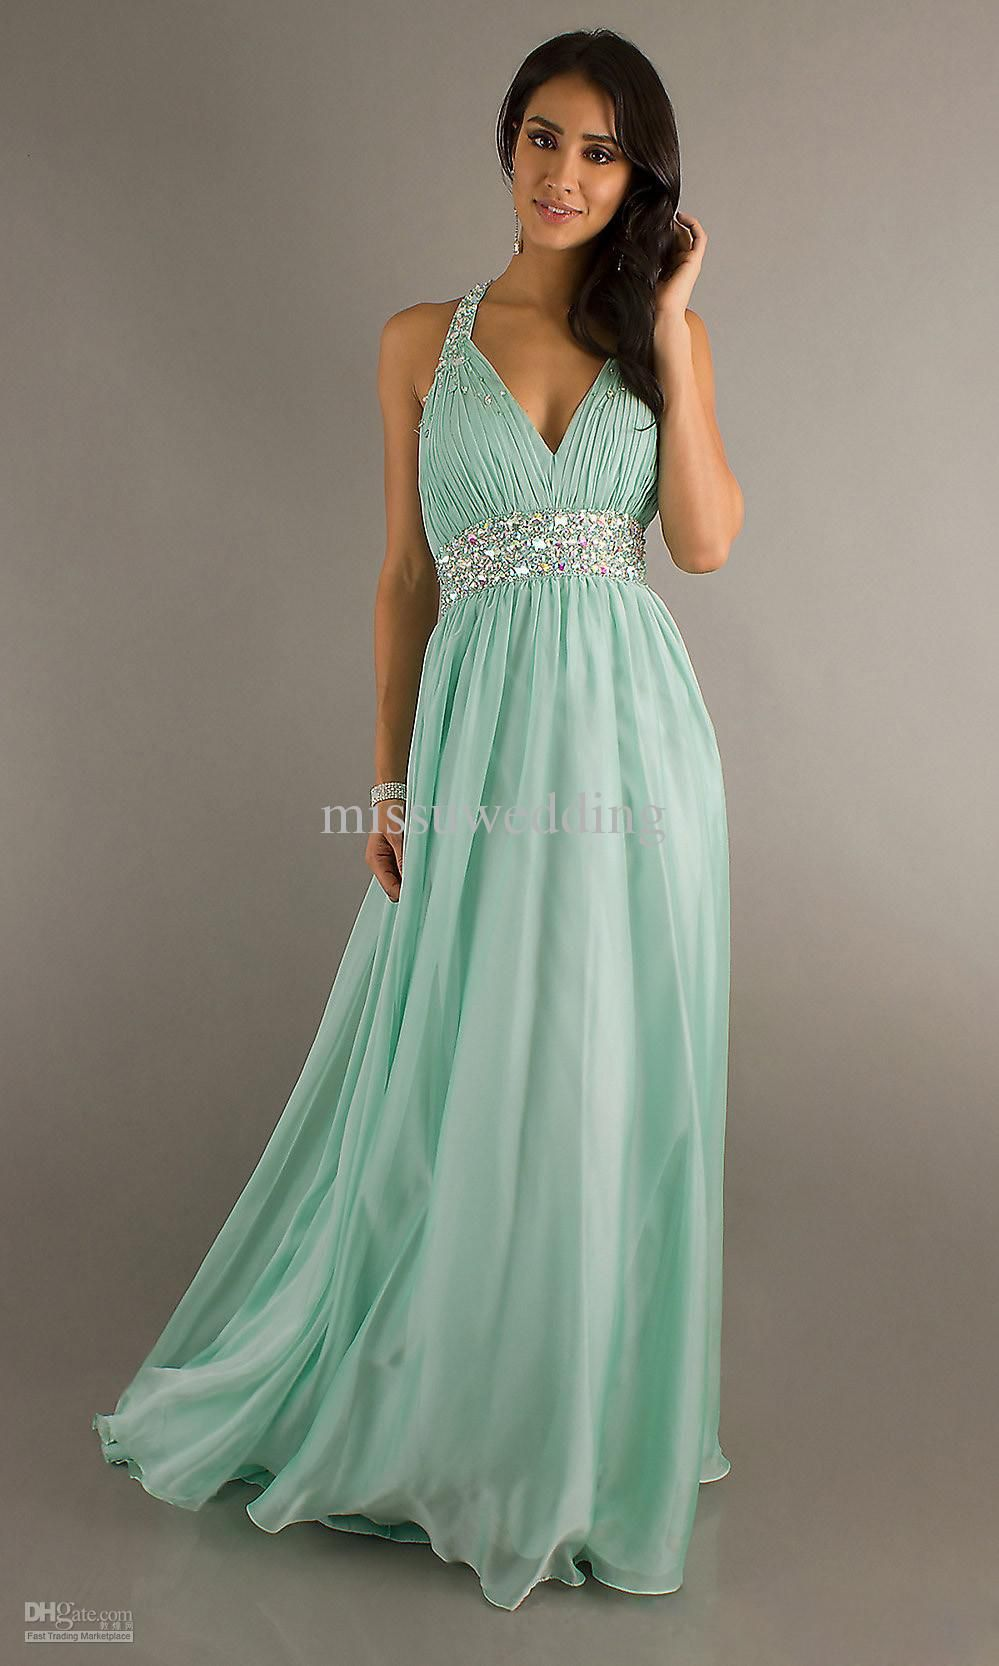 Plus size bridesmaid dresses mint green prom gowns formal plus size bridesmaid dresses mint green prom gowns formal evening dresses sexy ombrellifo Images